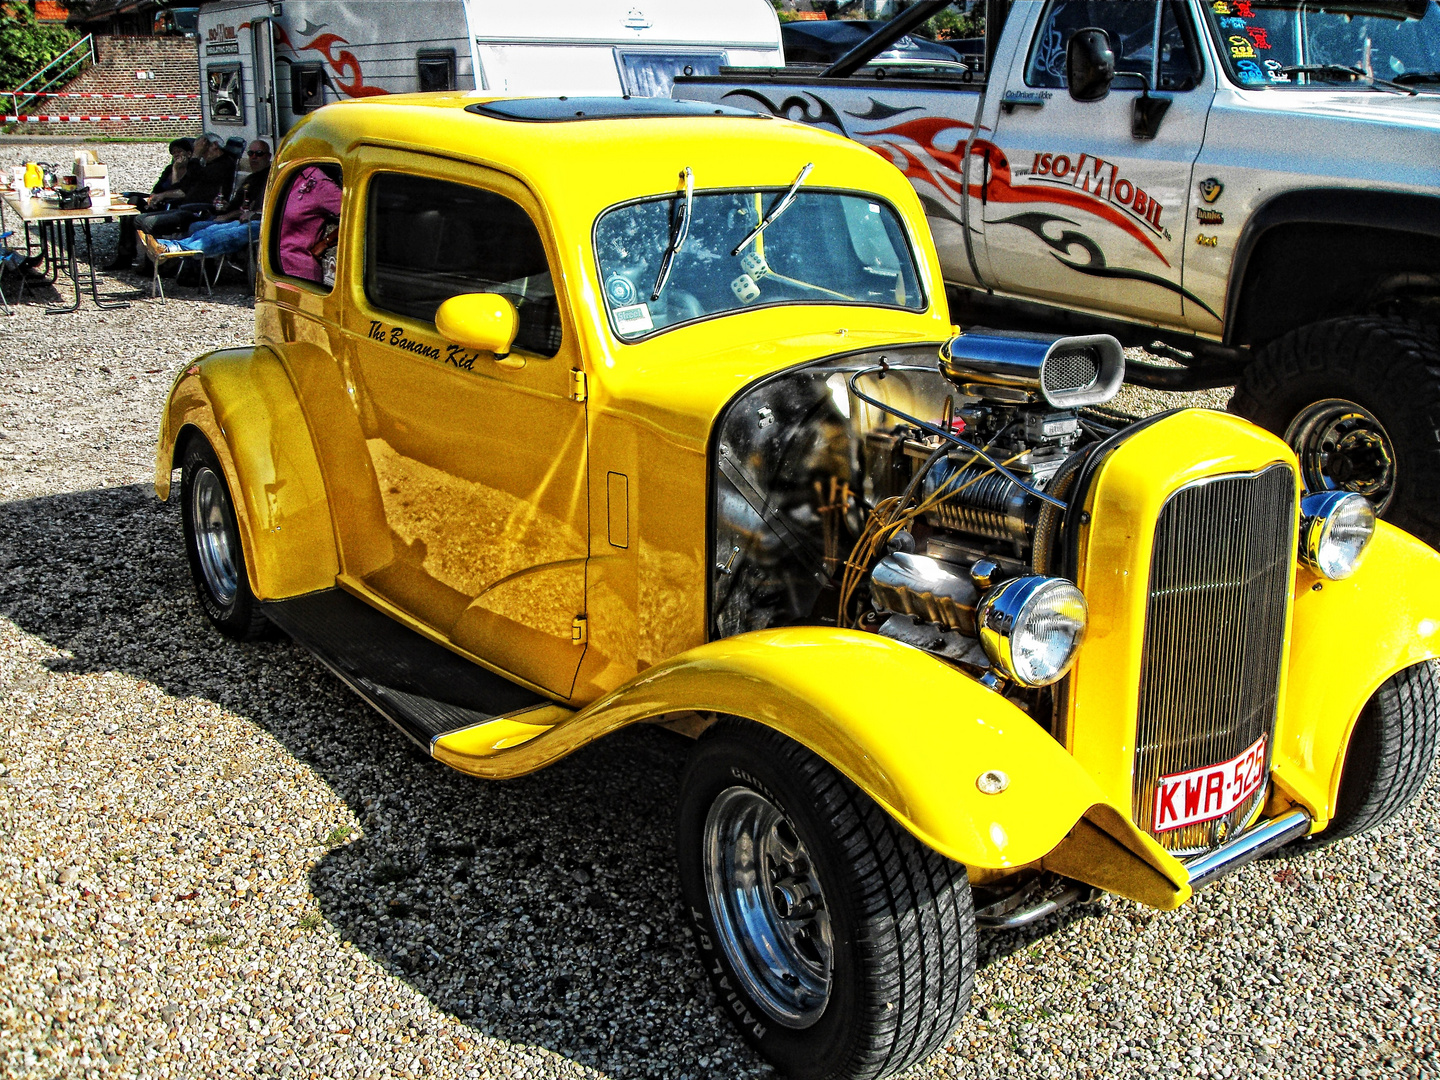 HOT - ROD in Gelb